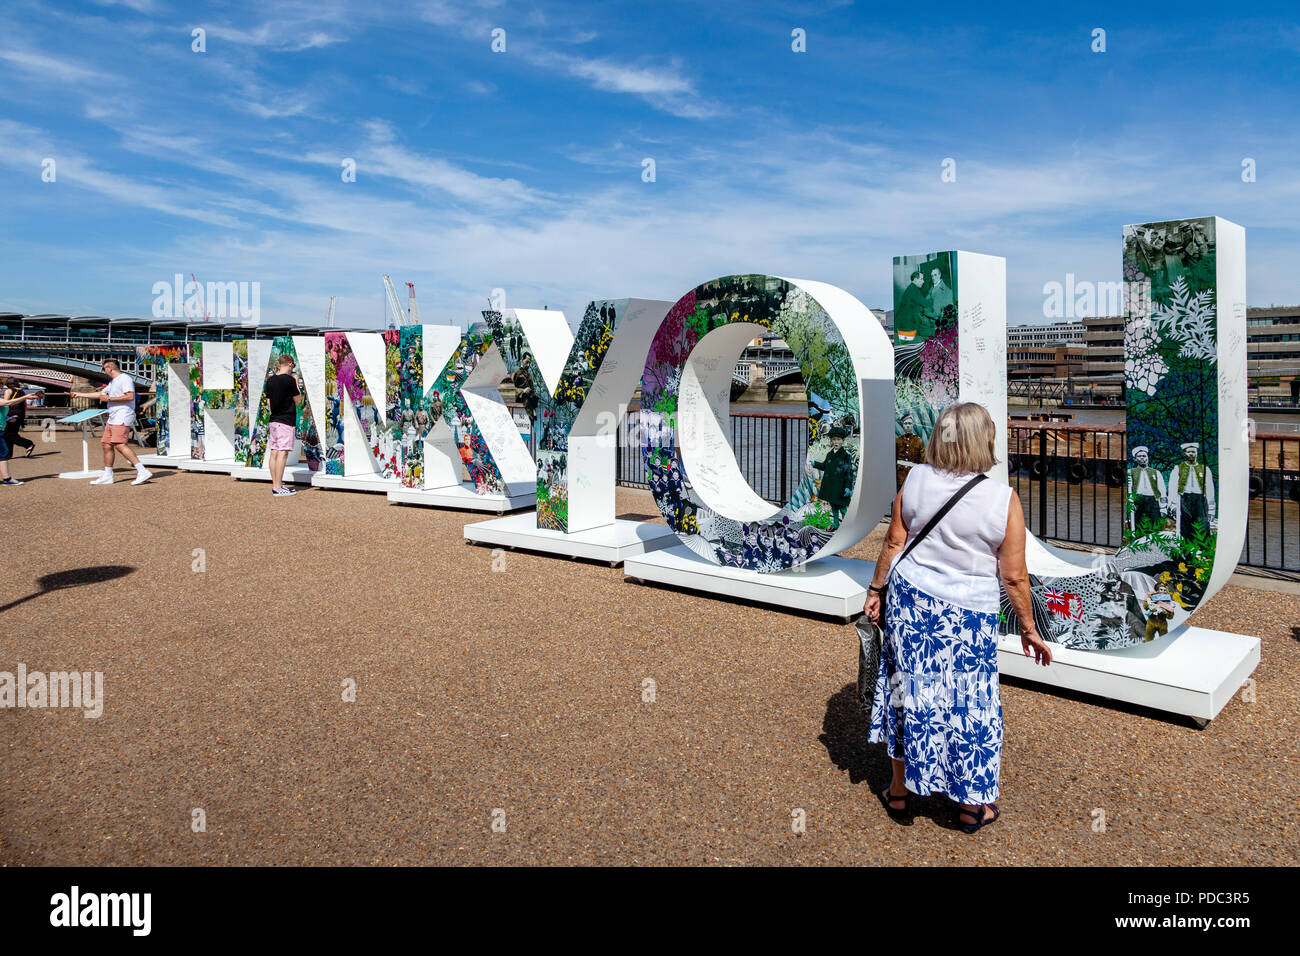 A Giant 'Thank You' Installation On The Southbank To Honour The First World War Generation, The Southbank, London, England - Stock Image